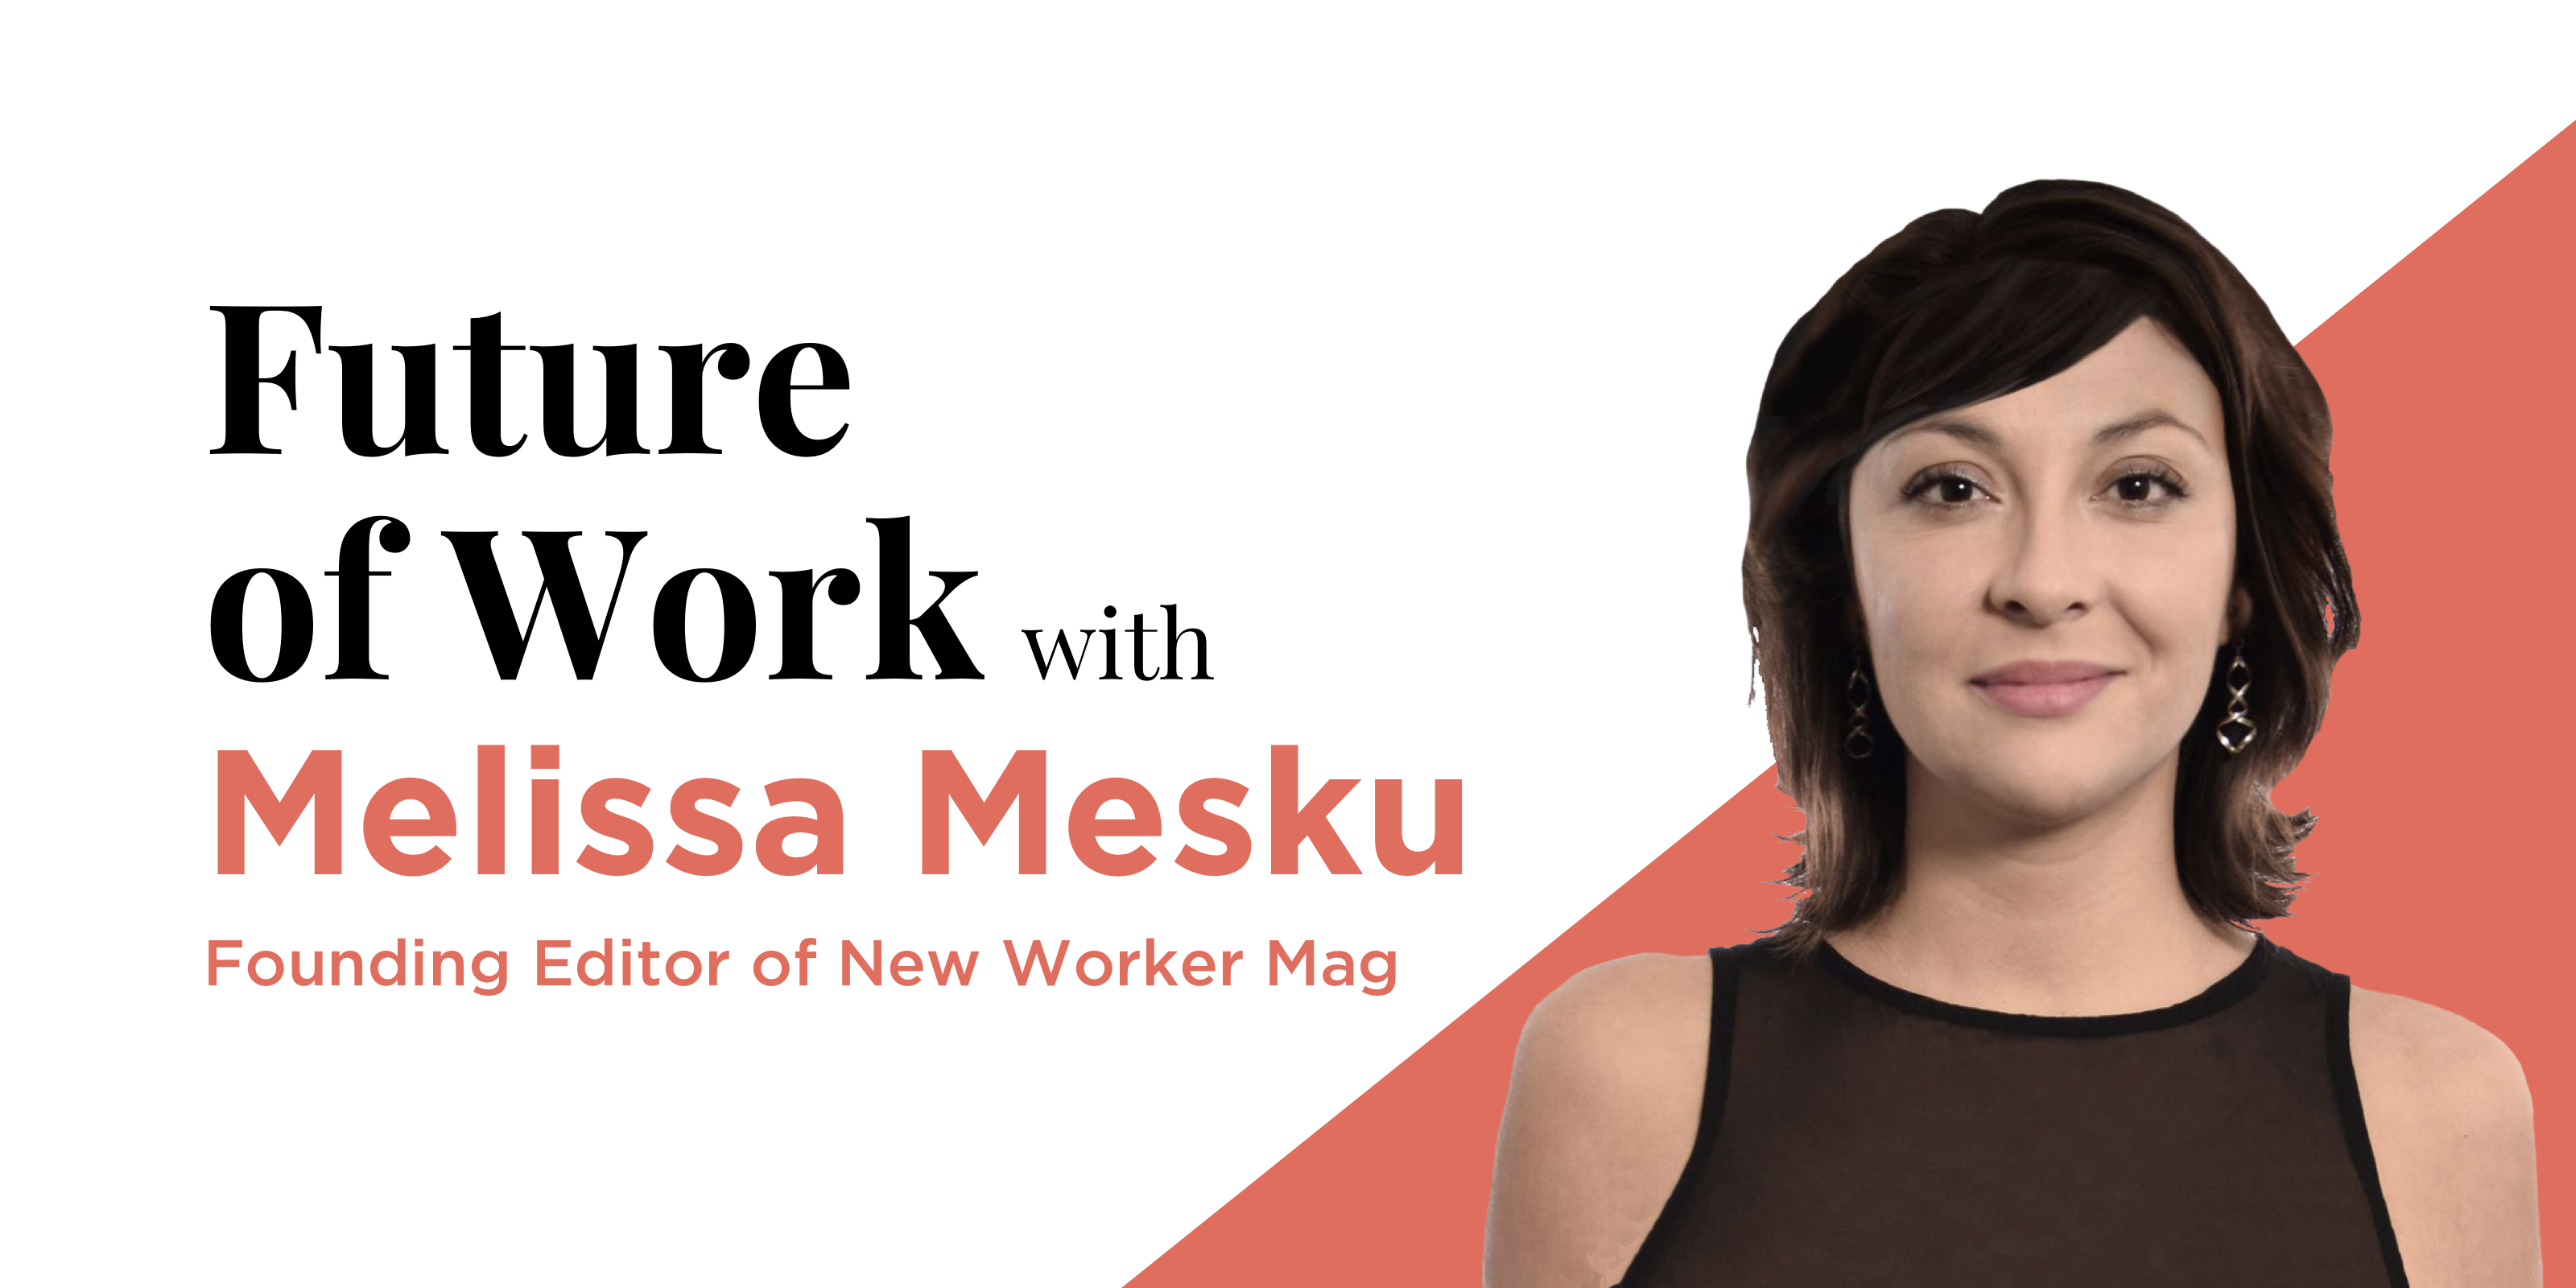 Future of Work with Melissa Mesku of New Worker Magazine